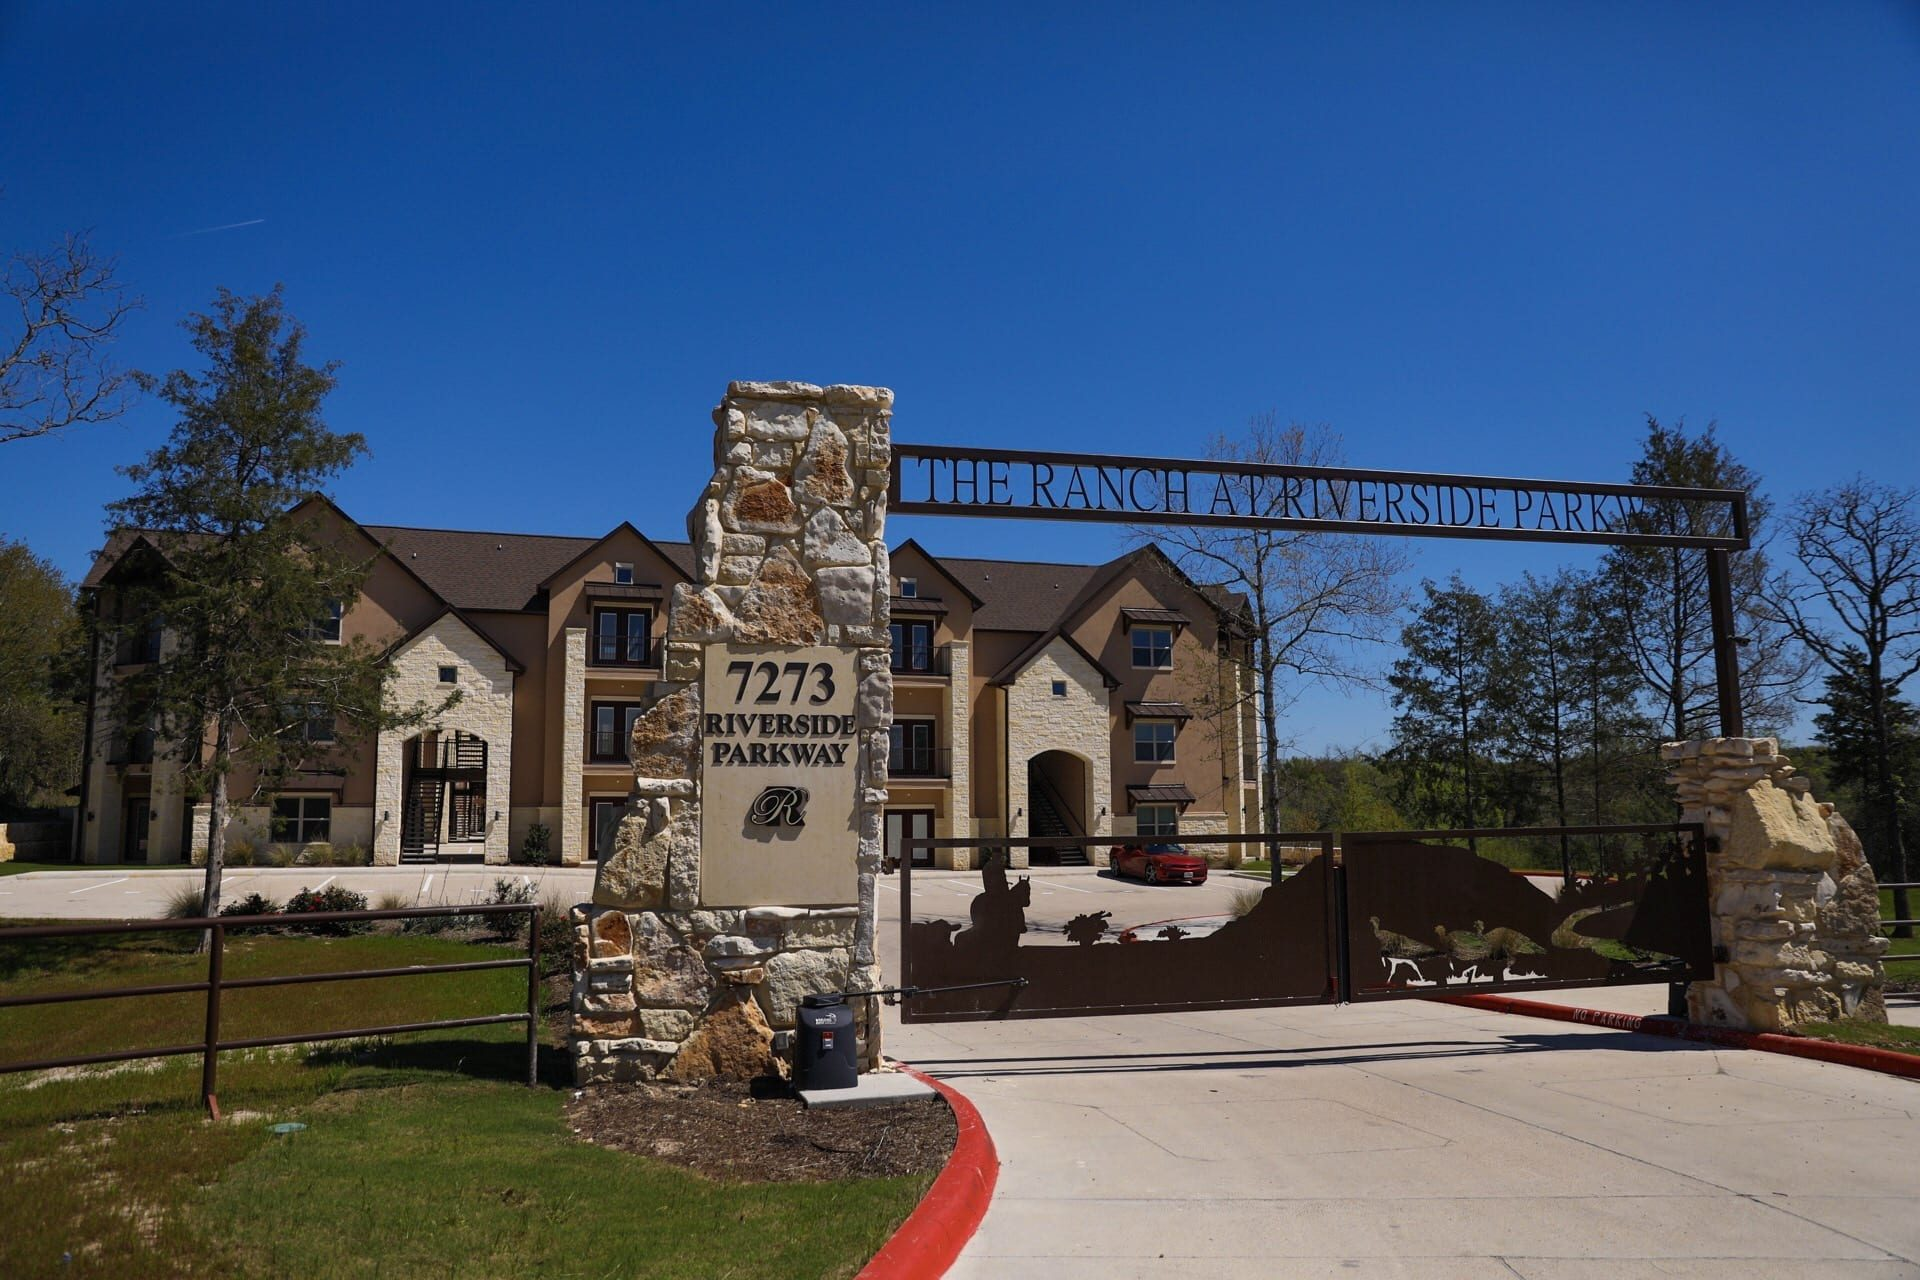 The Ranch at Riverside Parkway Amazing Views, Gated…